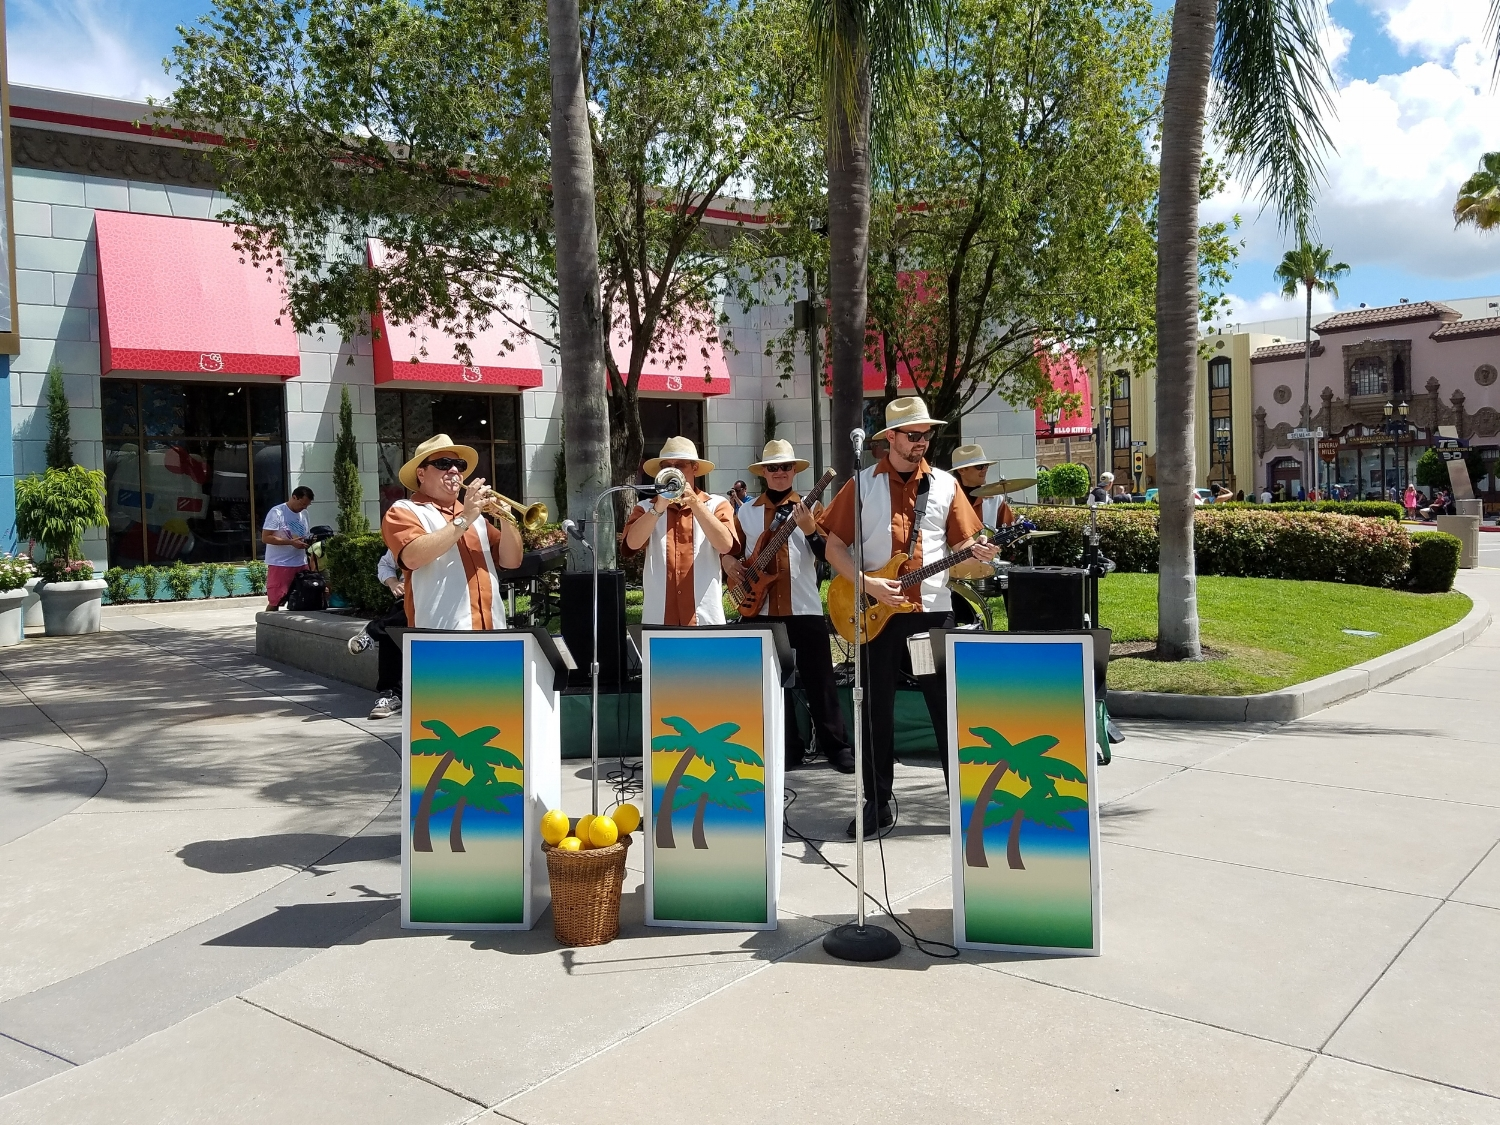 There are many different musical street shows that take place on the streets of Universal Studios Florida.